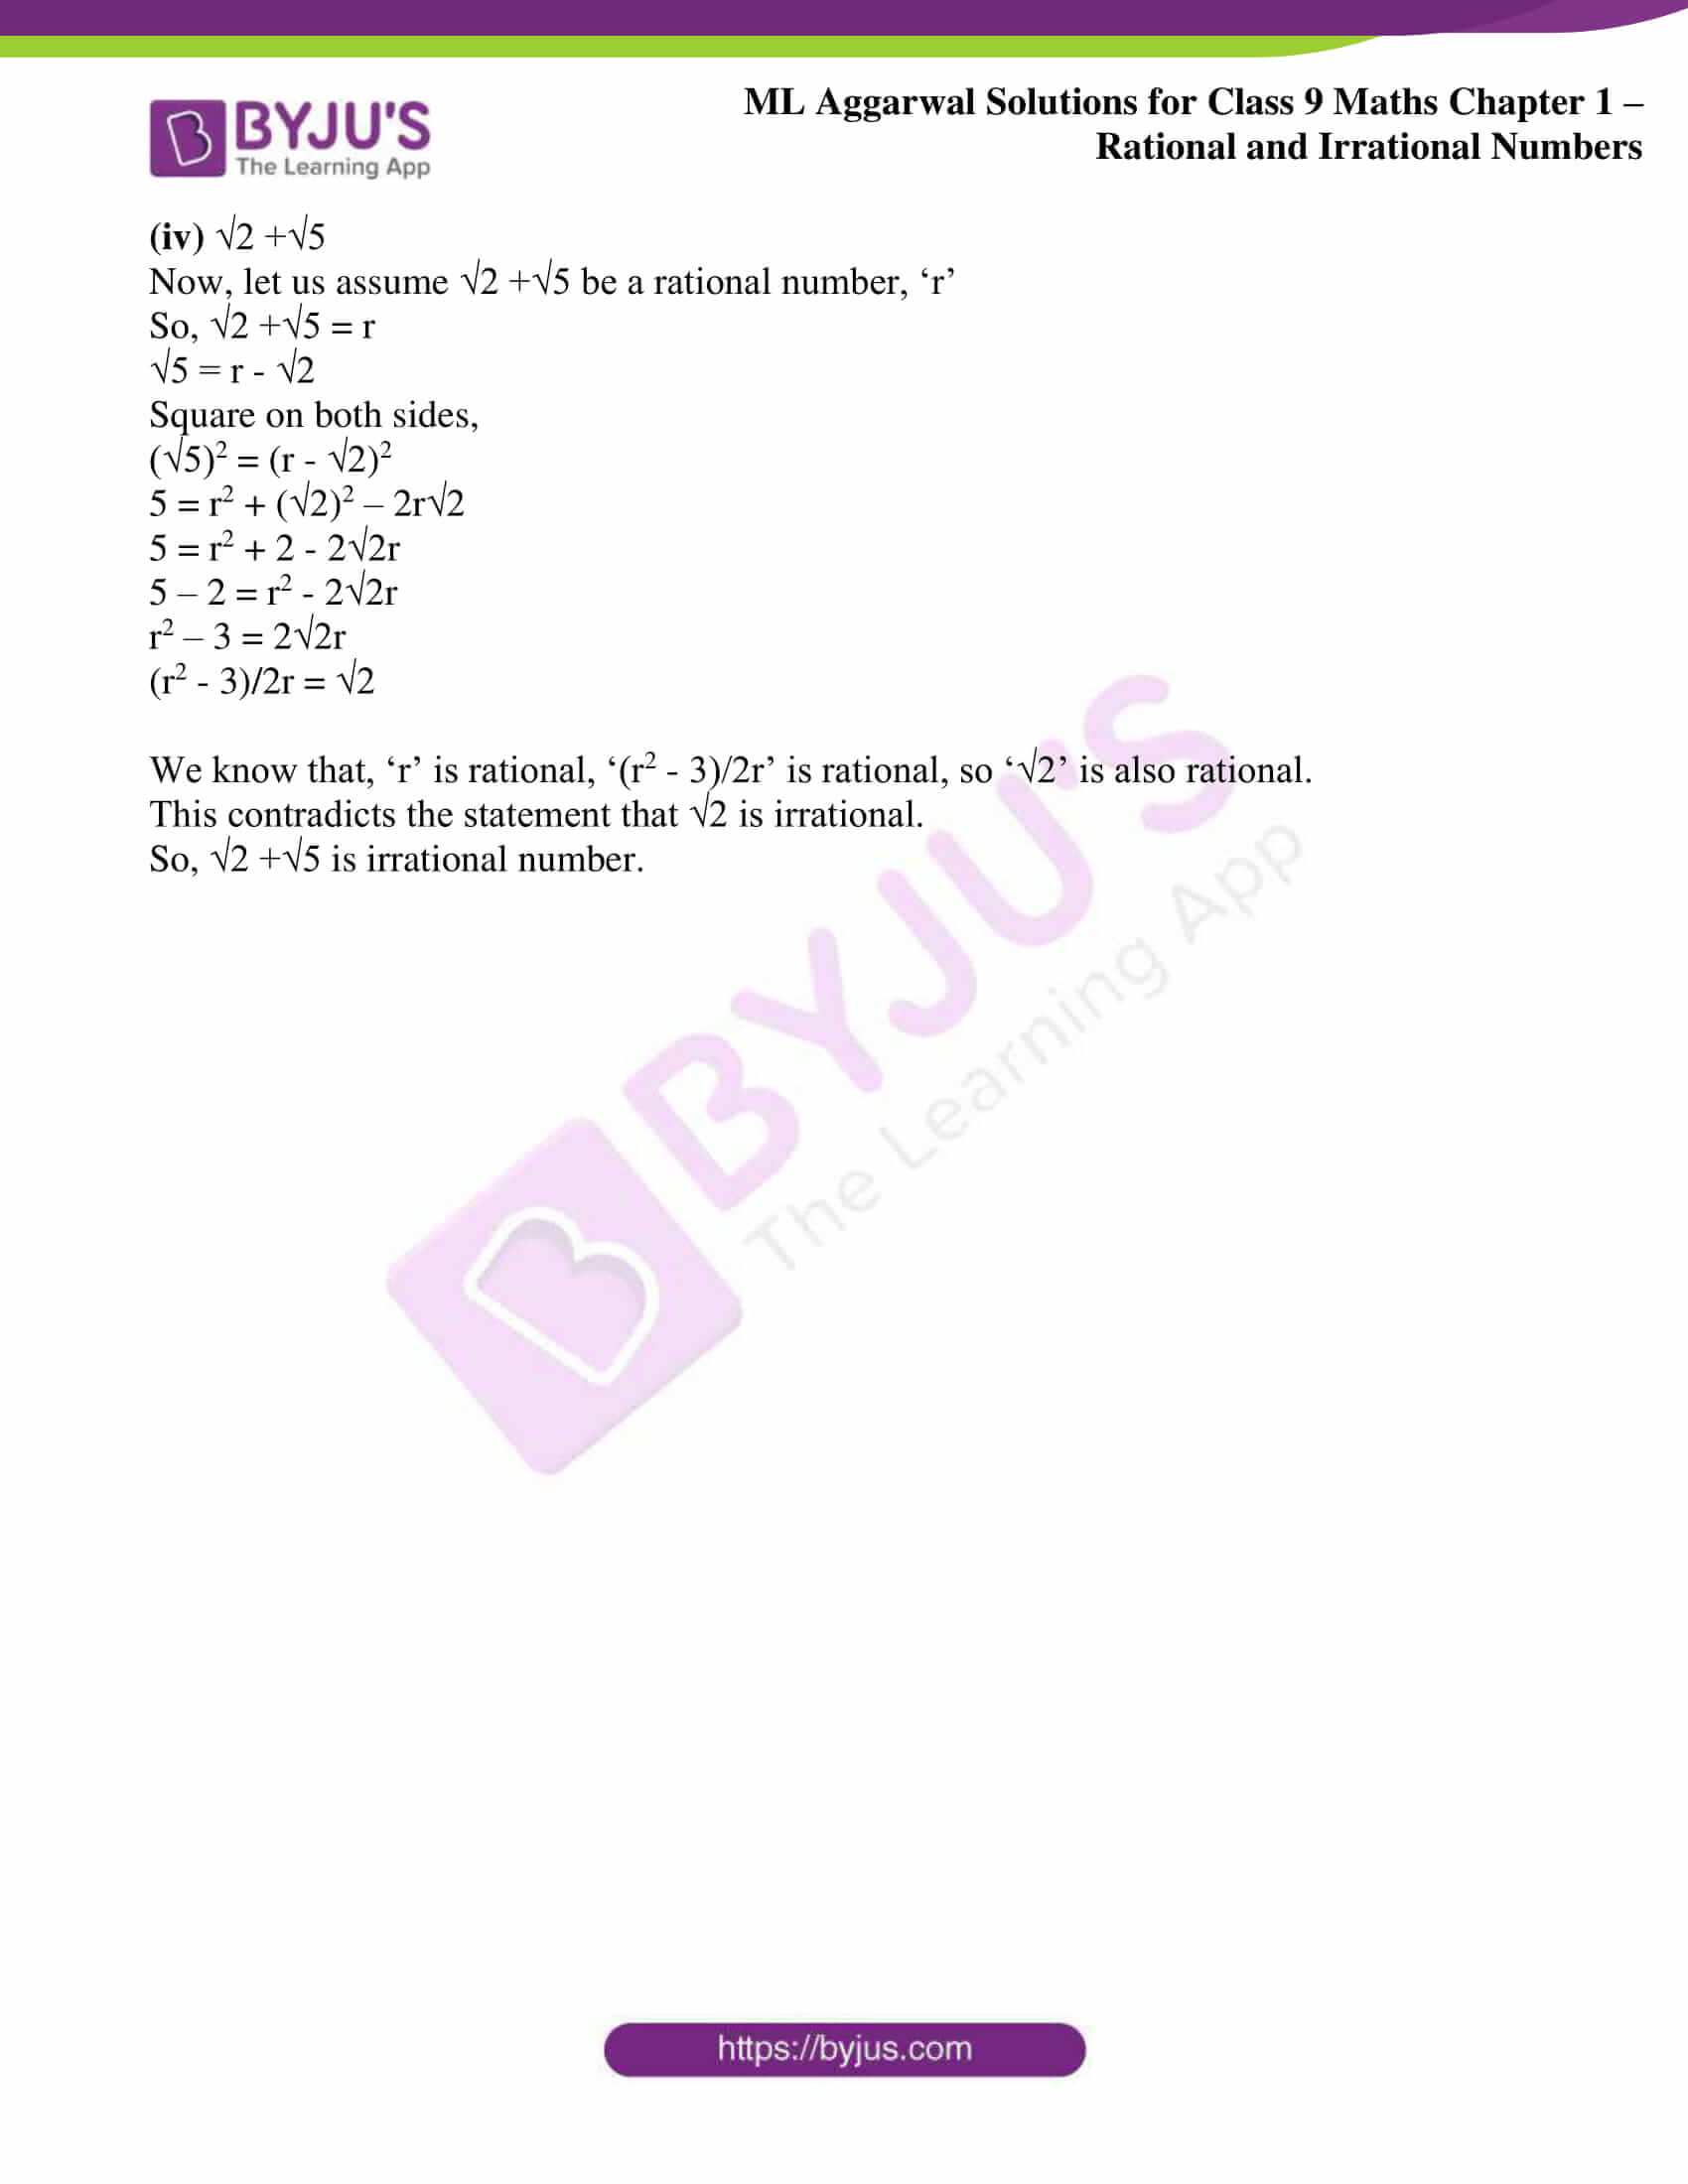 ml aggarwal solutions for class 9 maths chapter 1 14